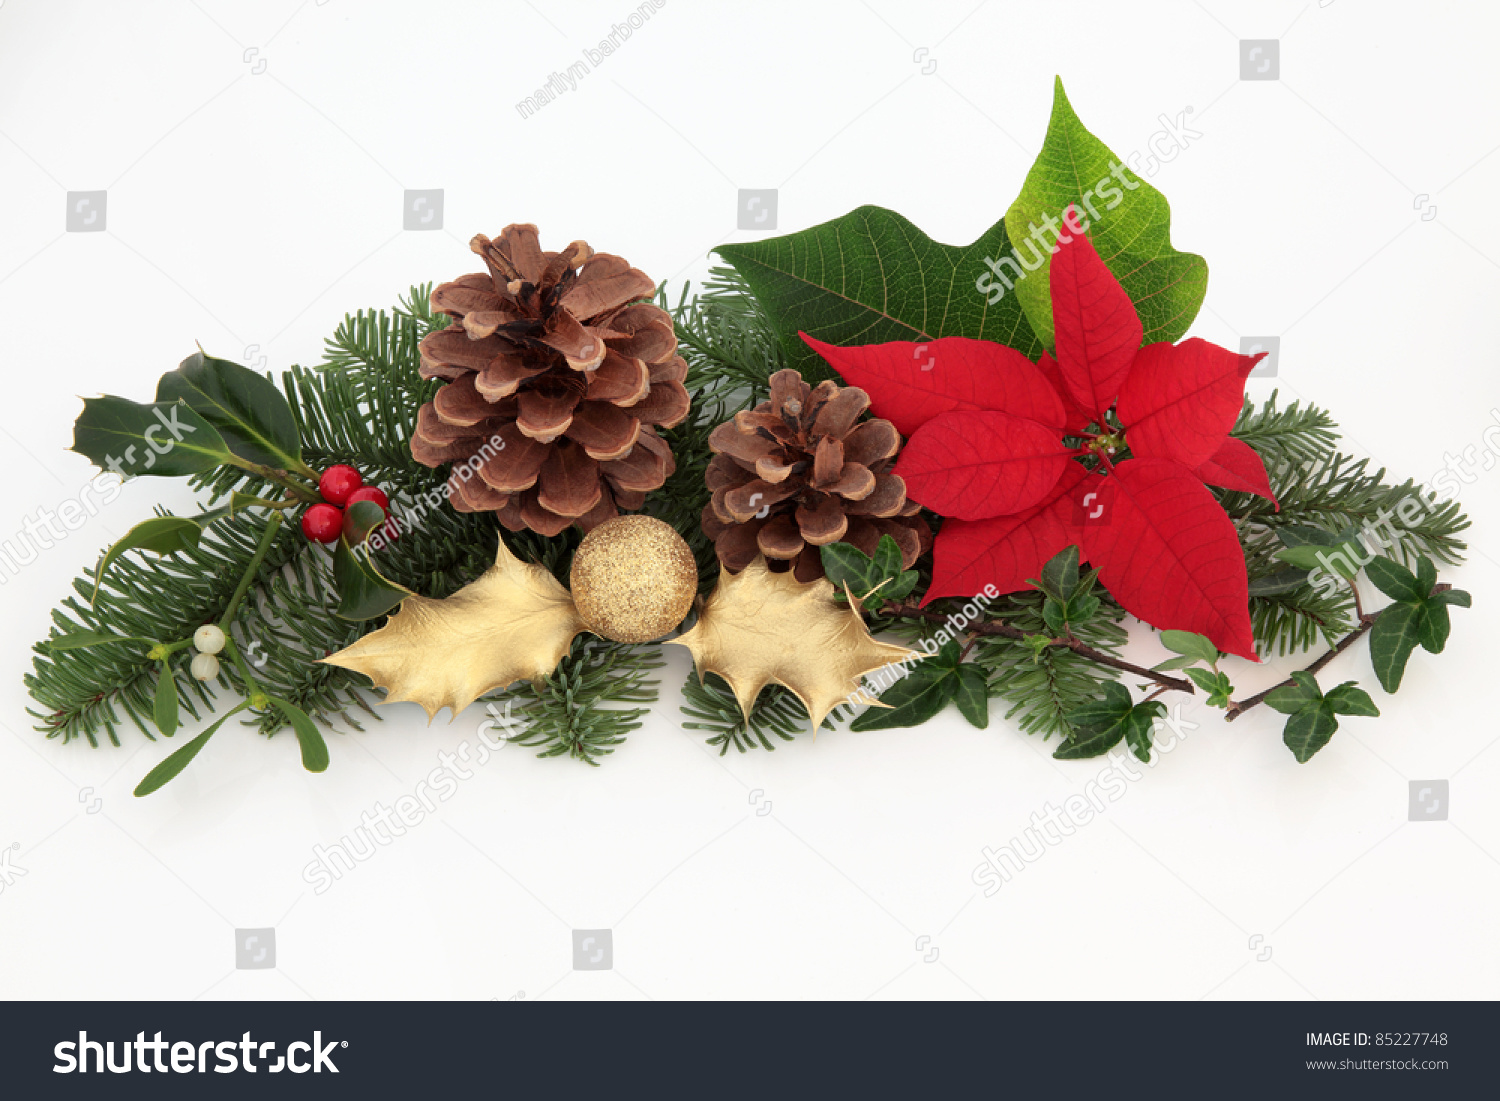 christmas decoration of red poinsettia flower mistletoe ivy gold holly and glitter bauble